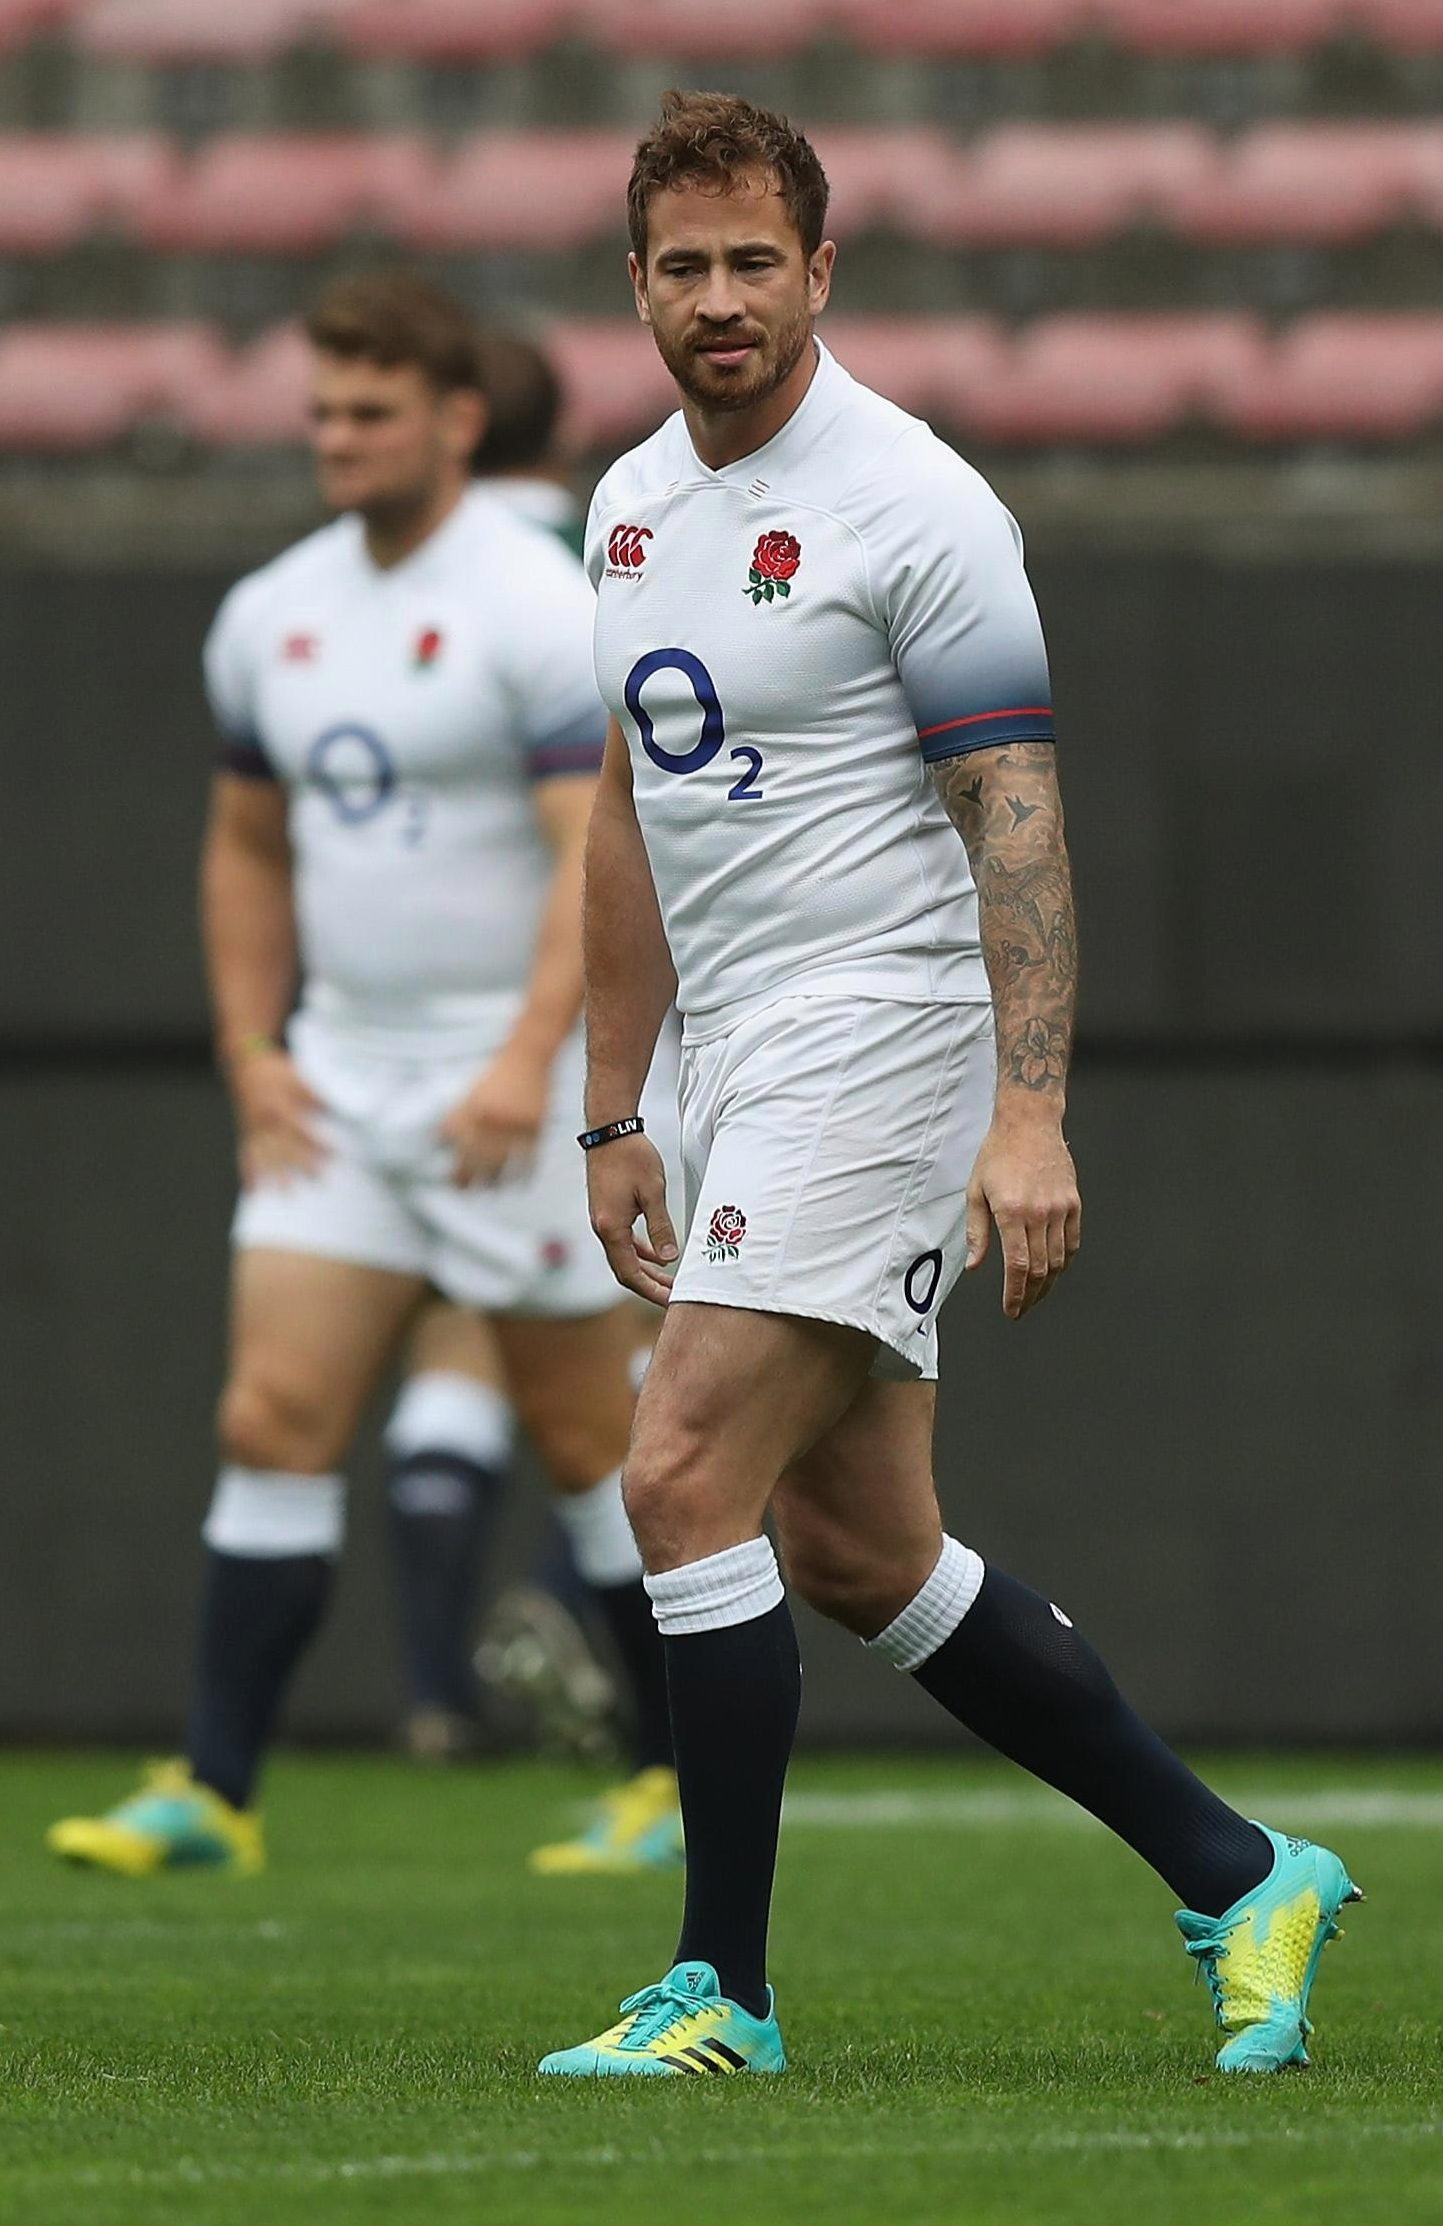 Danny Cipriani says he wants to stay in the England team for the long haul